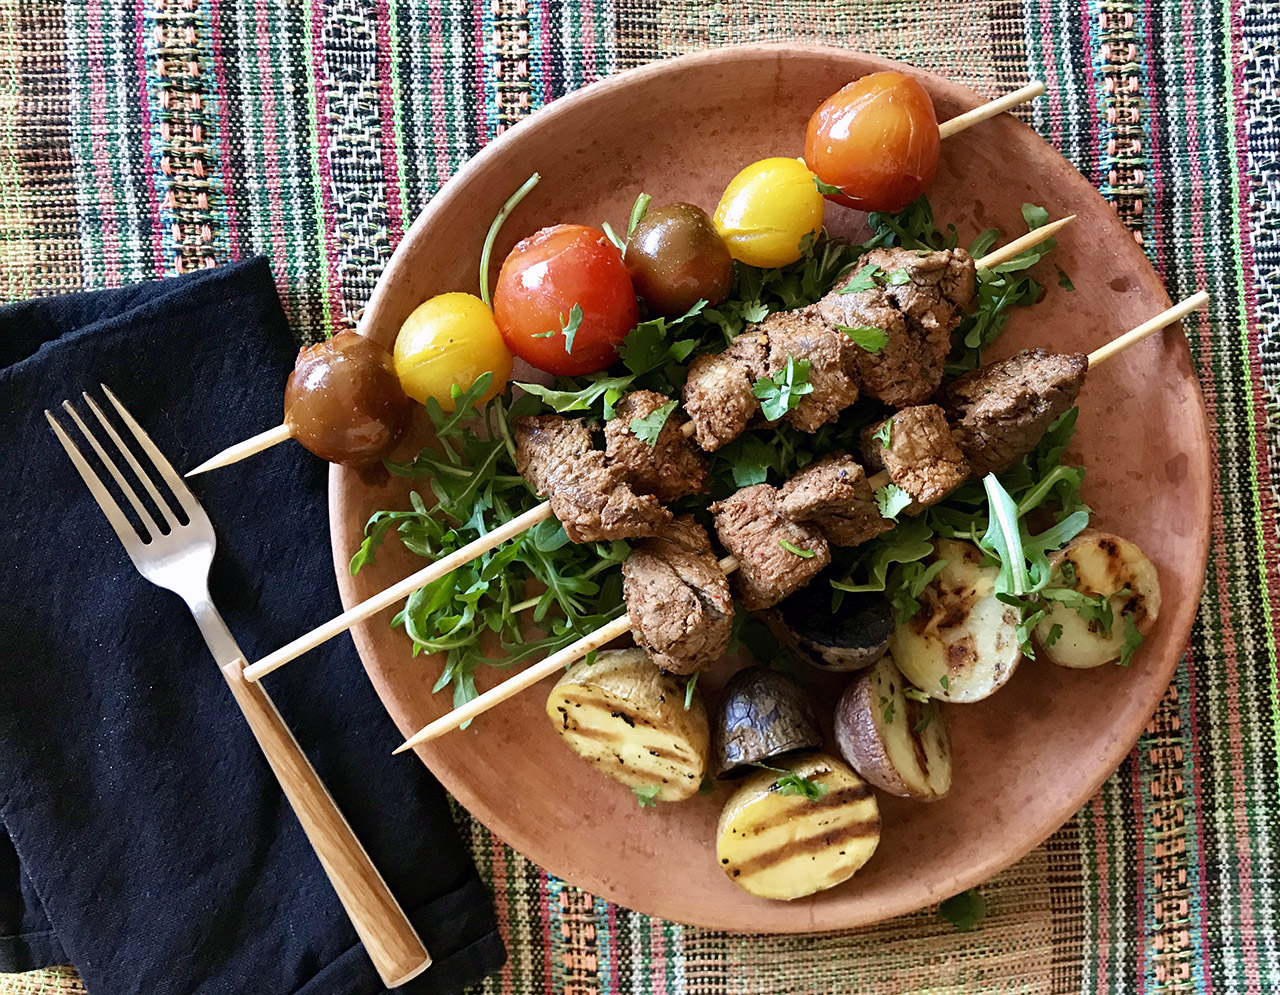 a clay-red plate with two skewers of beef cubes and one skewer of colorful small tomatoes